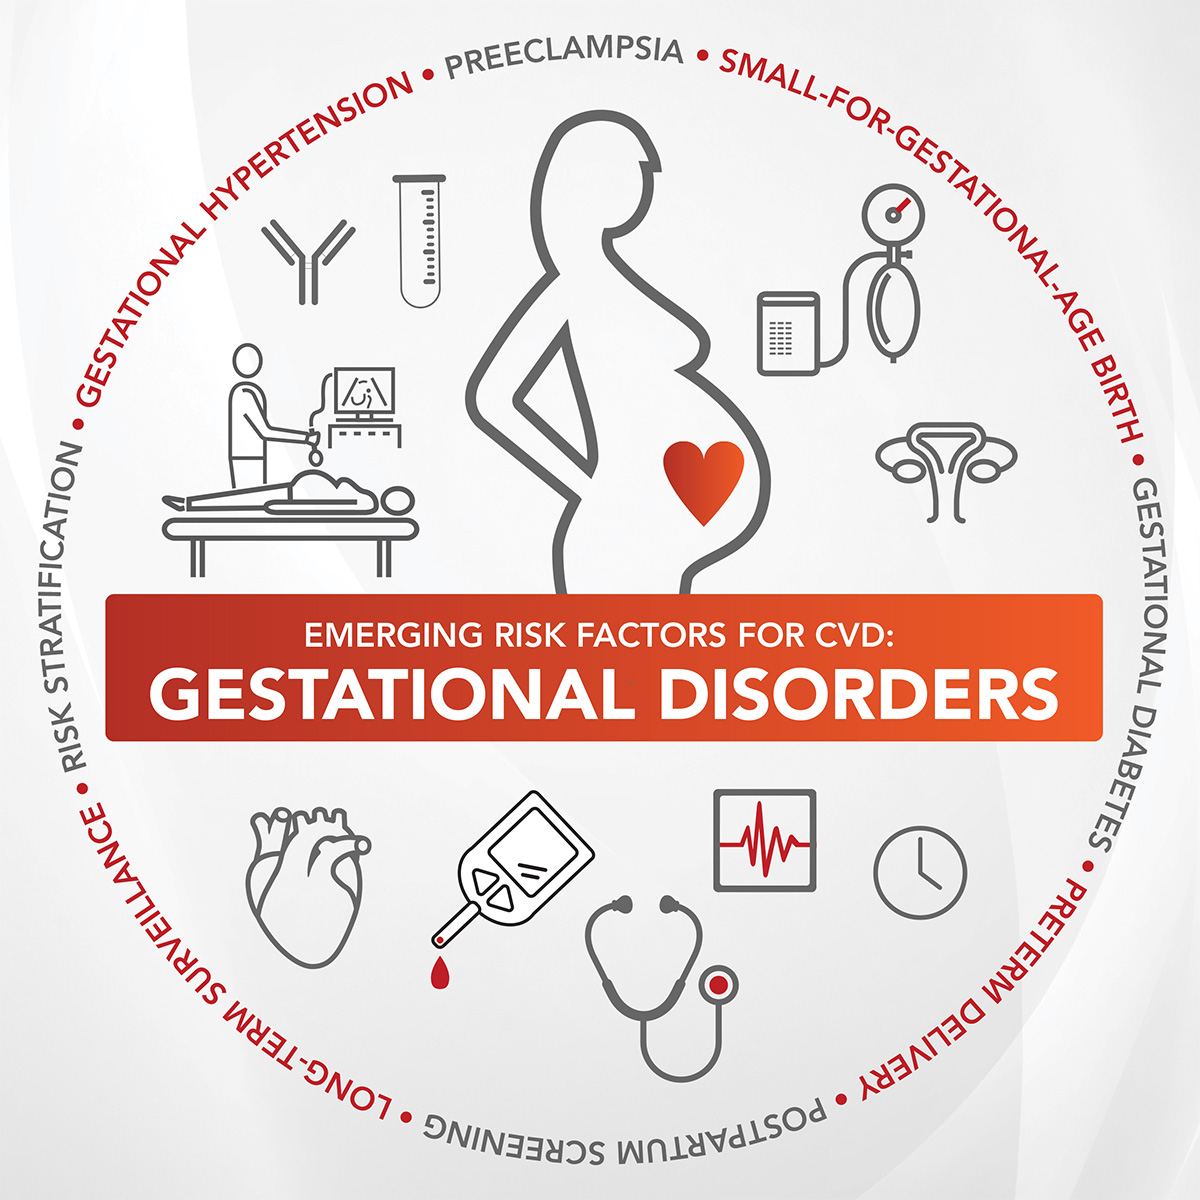 Cover Story | Gestational Hypertension and Preeclampsia: Nontraditional  Risk Factors For Cardiovascular Disease - American College of Cardiology